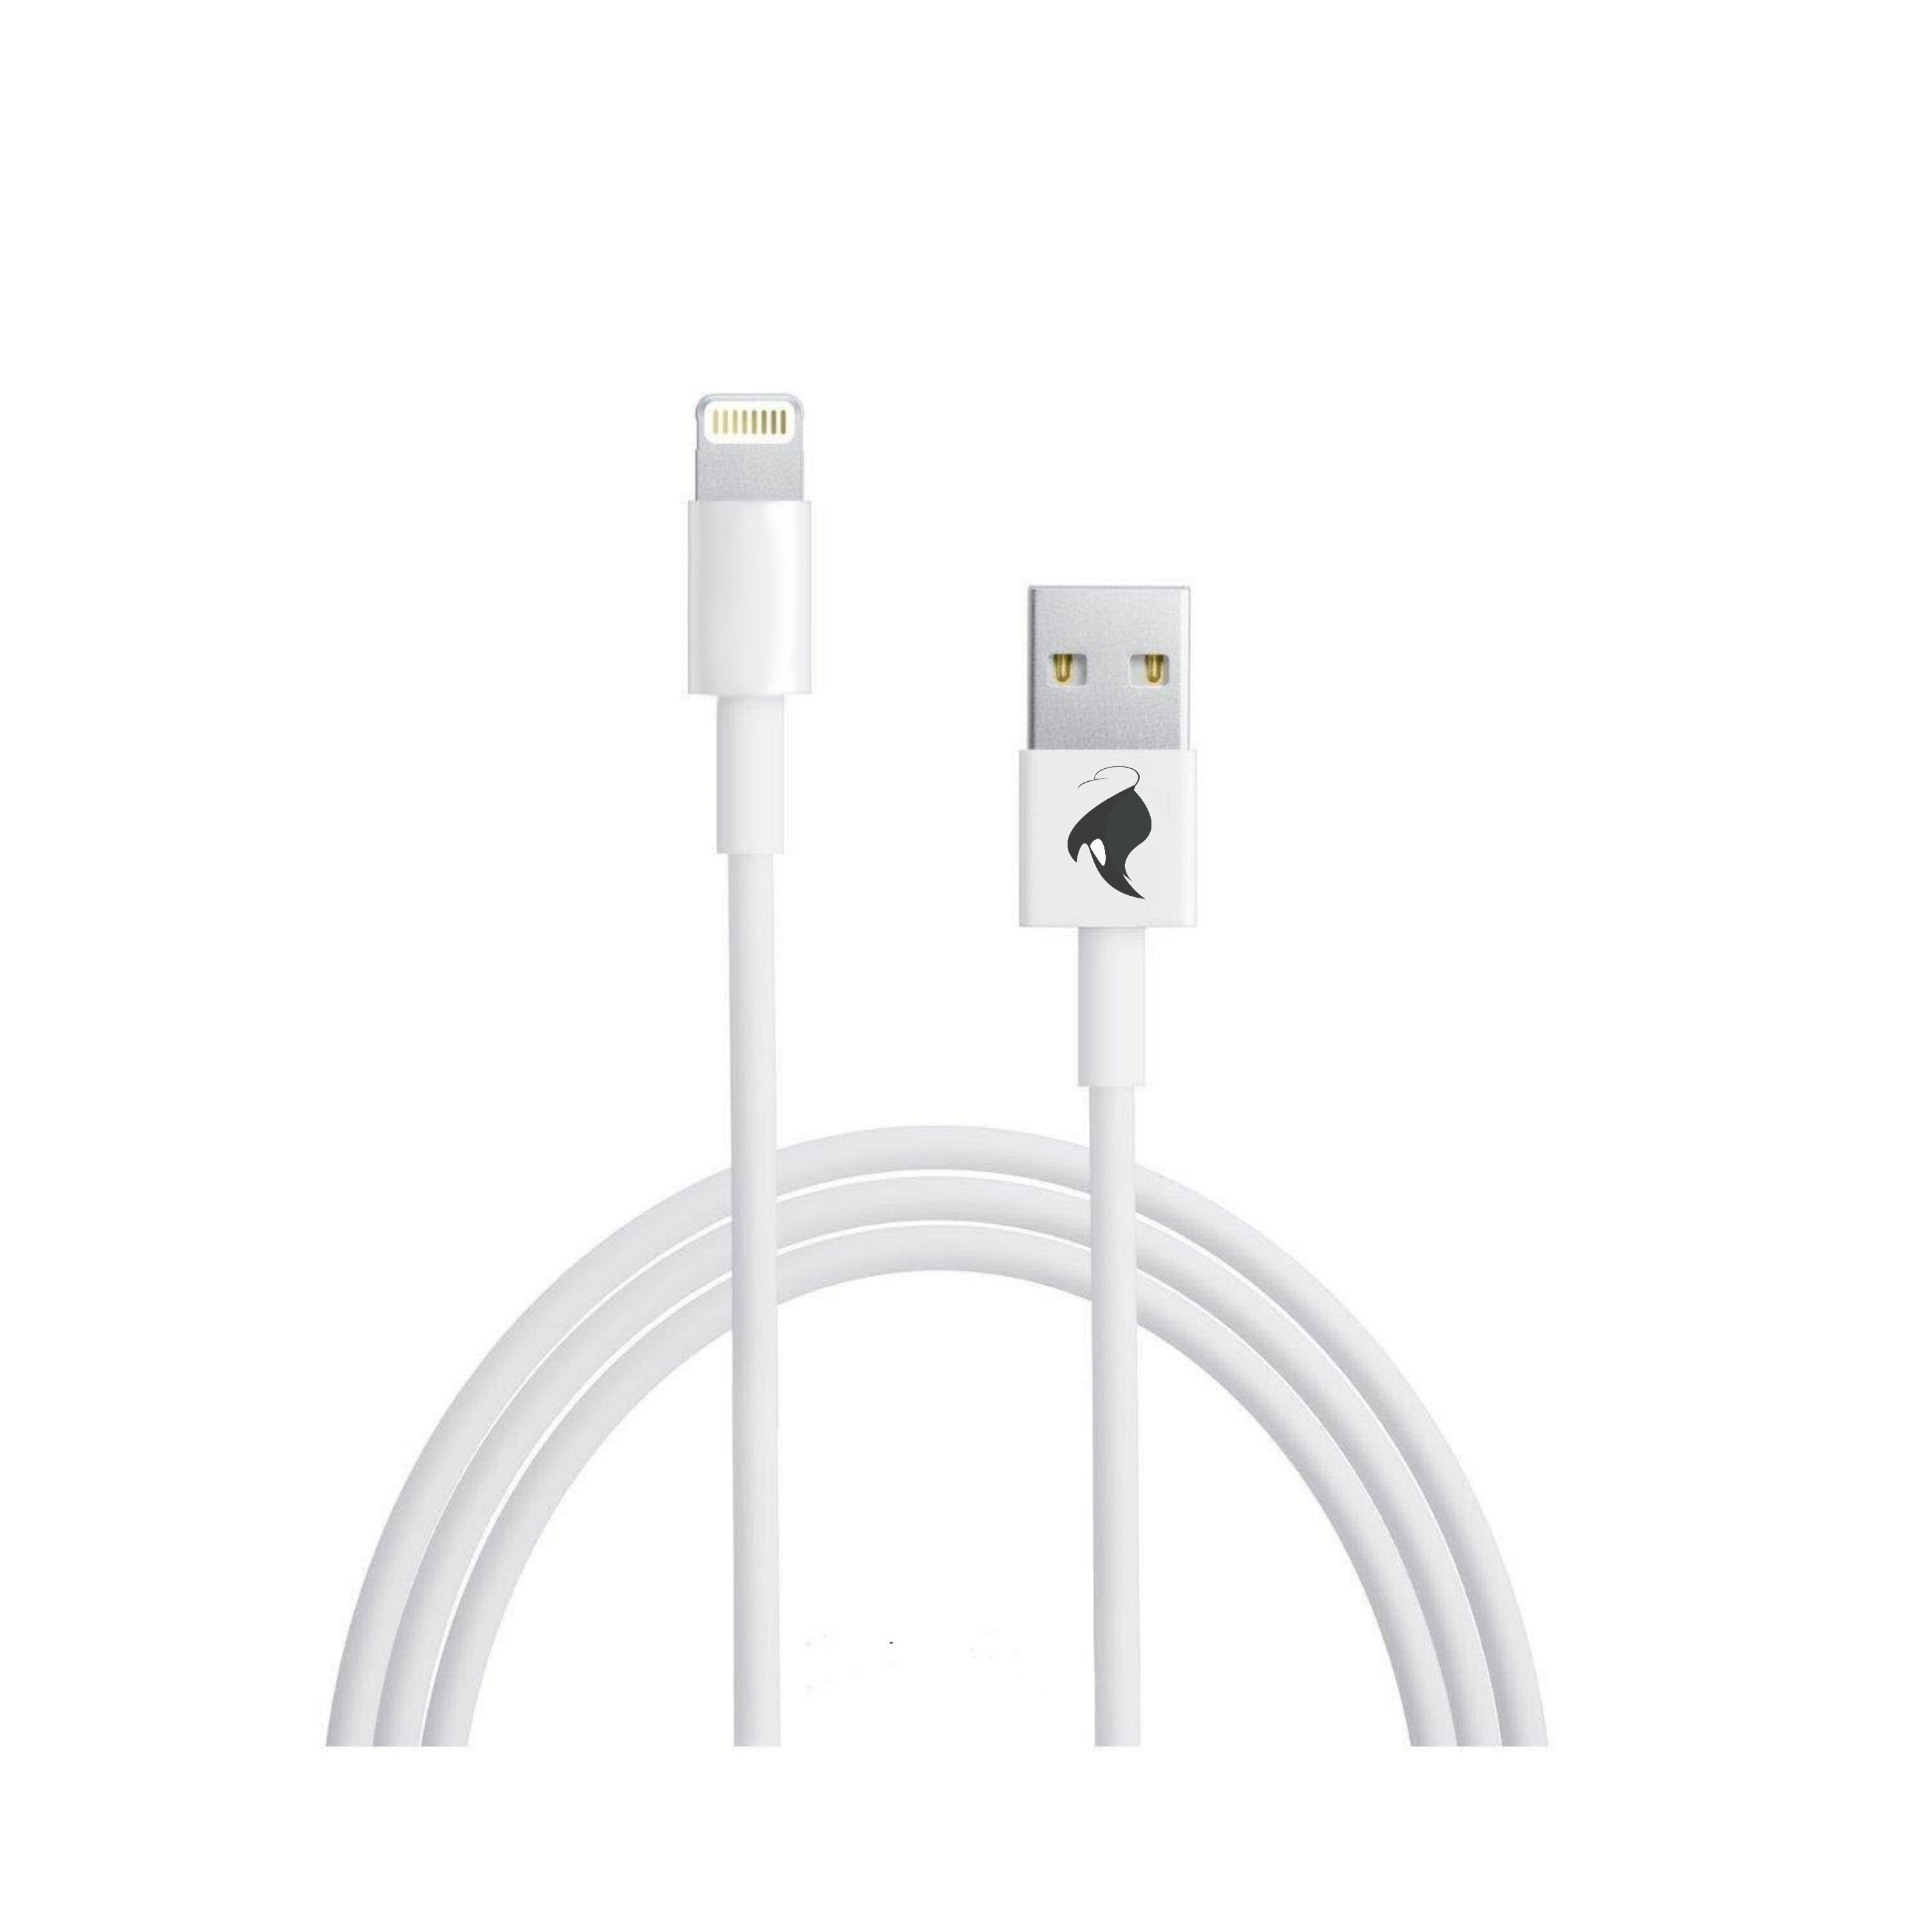 Iphone 5s Lightning Cable Original: iPhone 6 Charger High Quality and Durable Original Apple Certified rh:walmart.com,Design